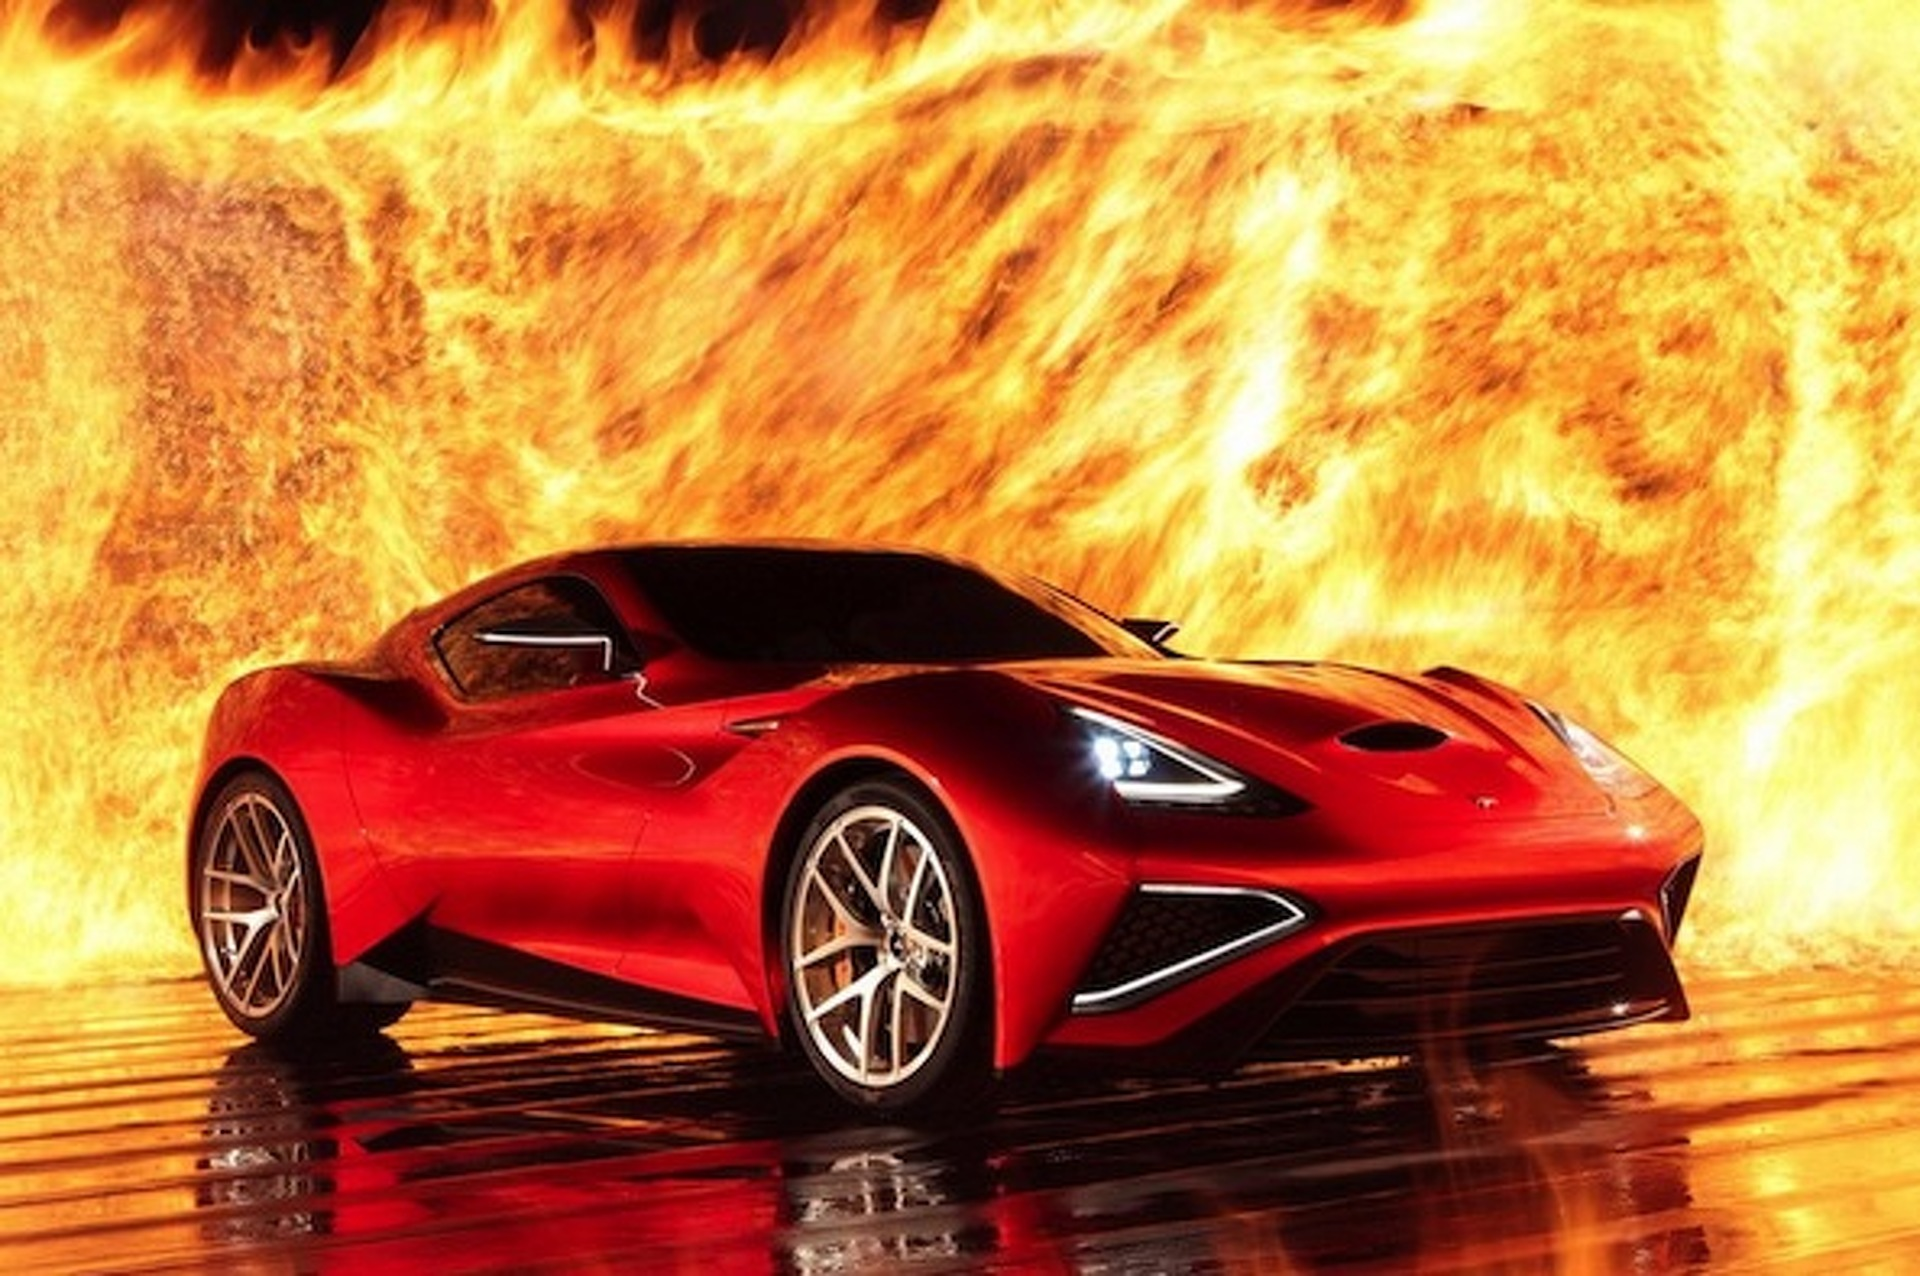 2013 Shanghai Auto Show: Top Five Rides from China